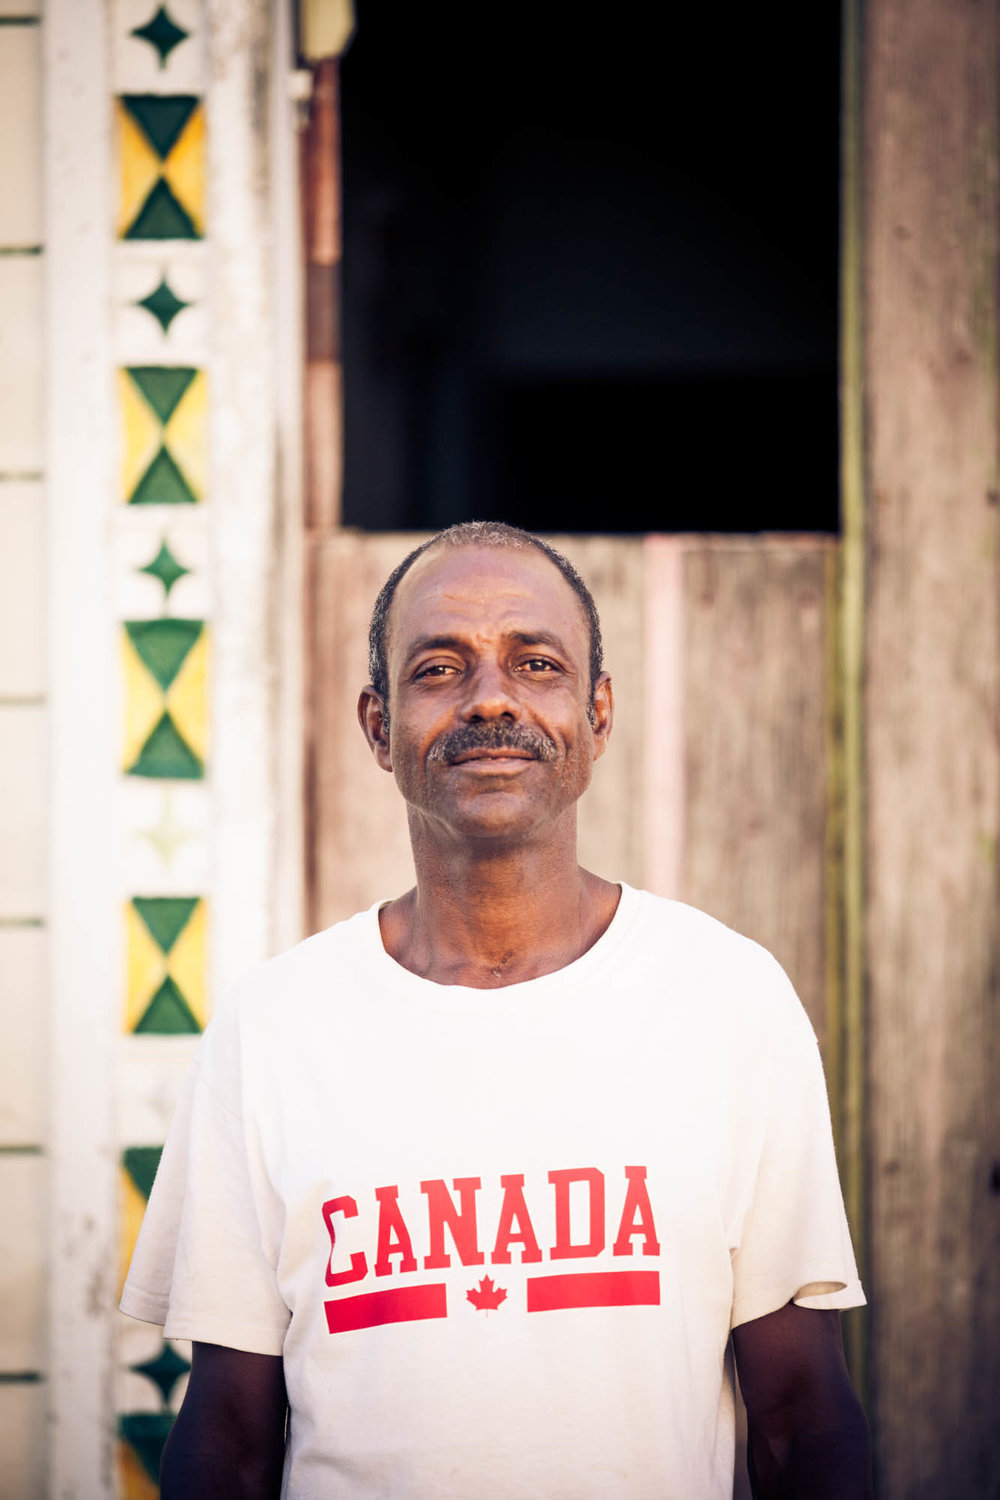 CANADA  We walked past this gentleman during the golden hour. He gave a friendly nod and asked if we'd take his photo. I held up my camera, I had 3 frames; this was one.